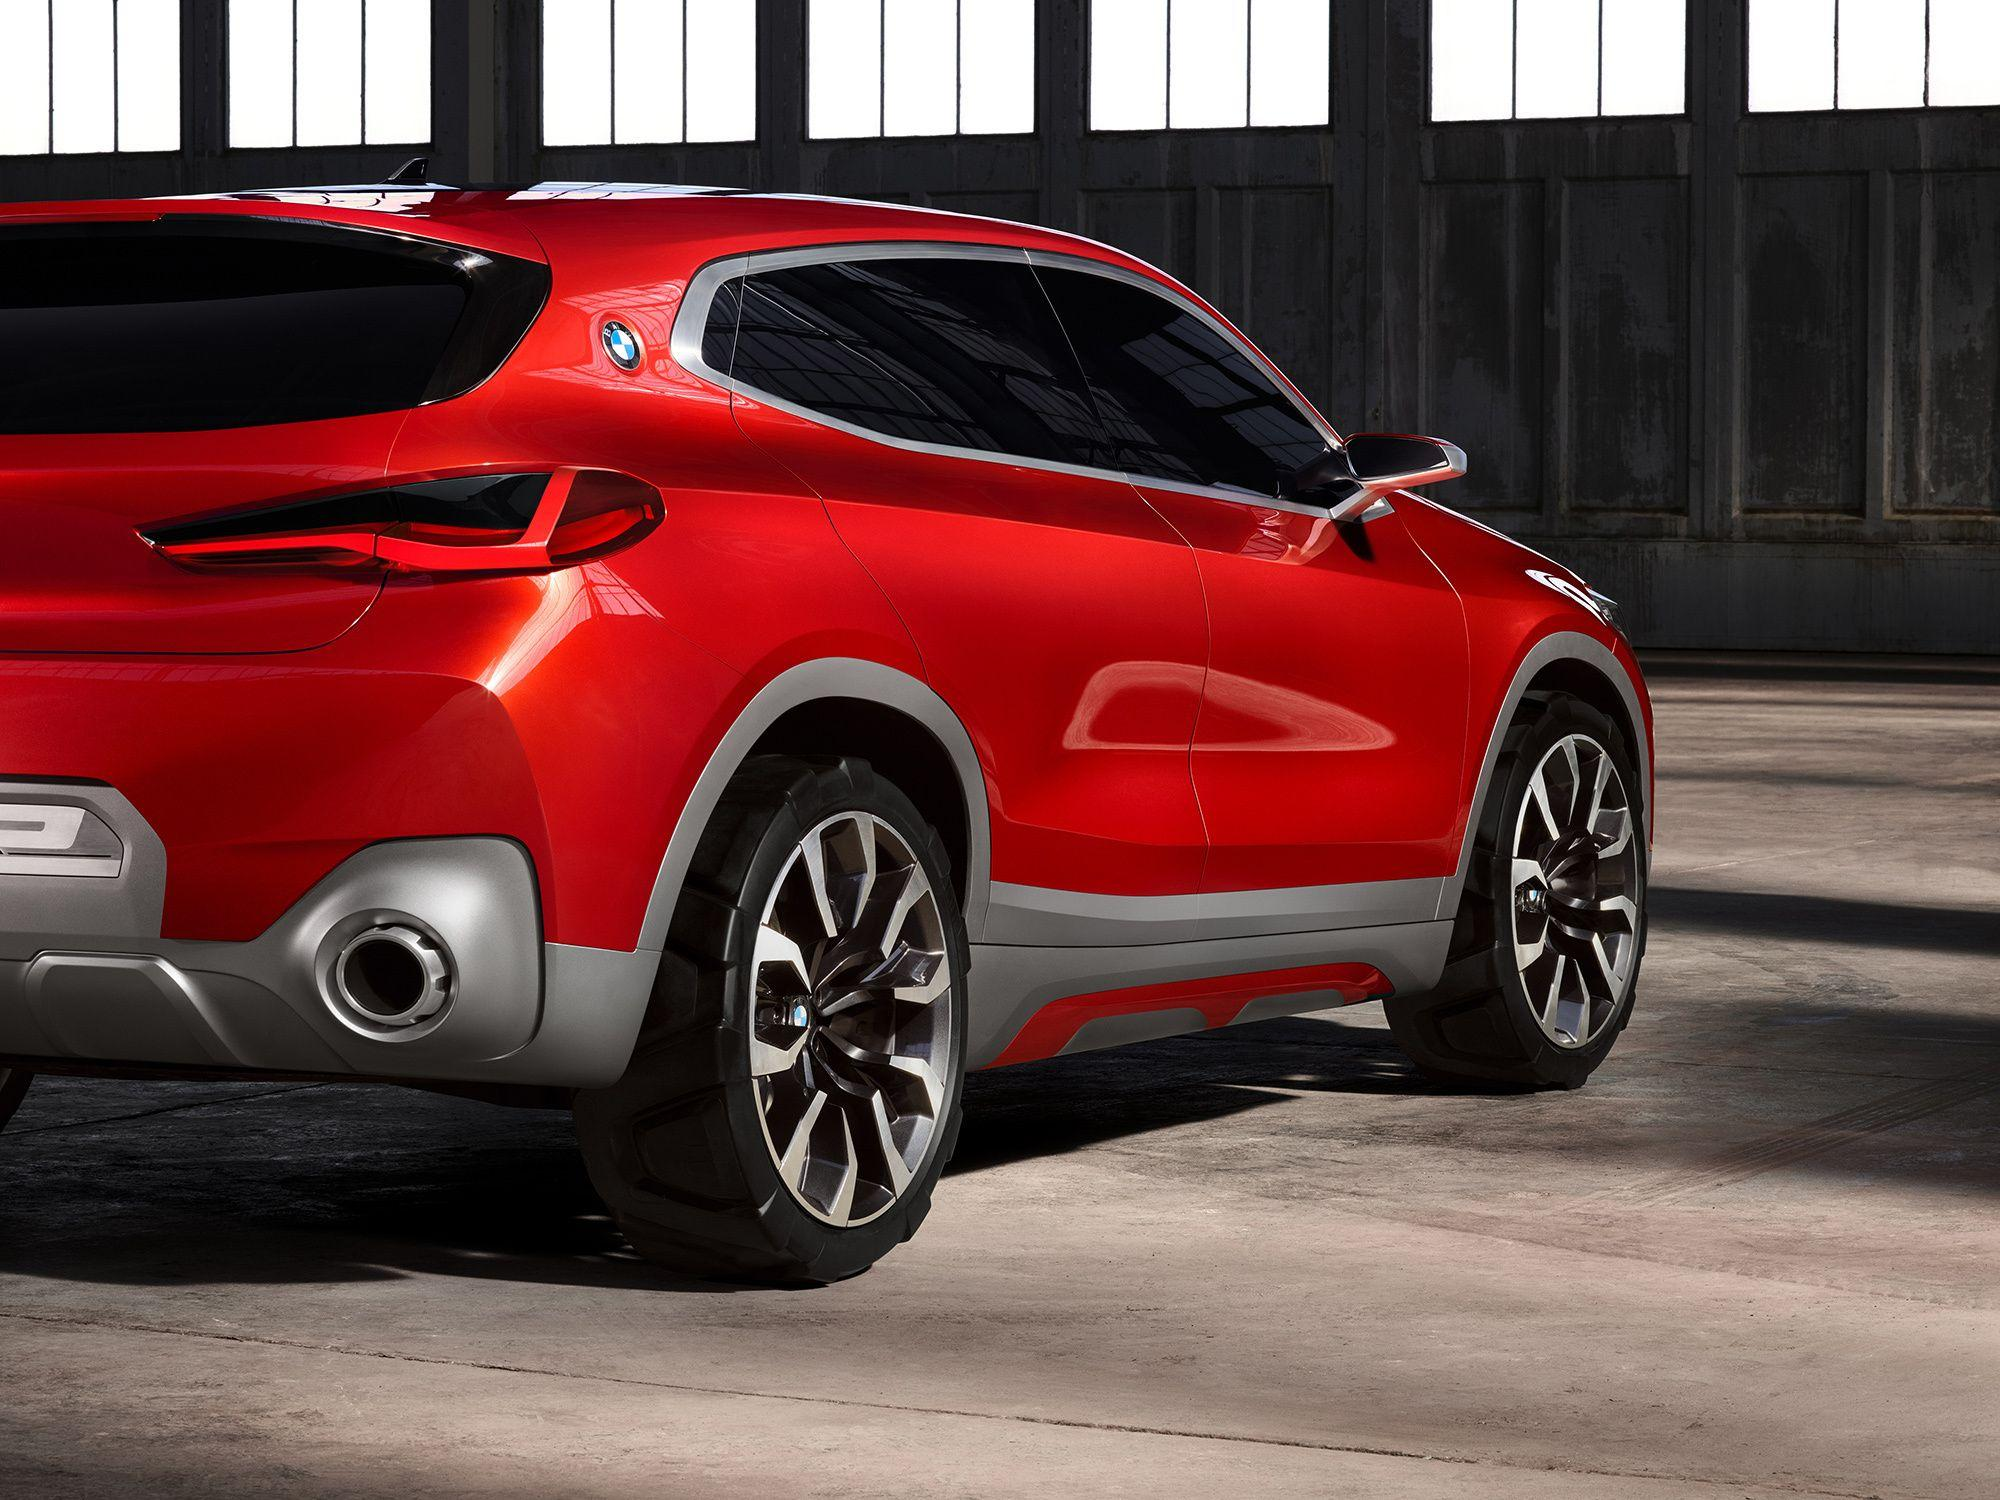 BMW X2 Wallpapers Image Photos Pictures Backgrounds